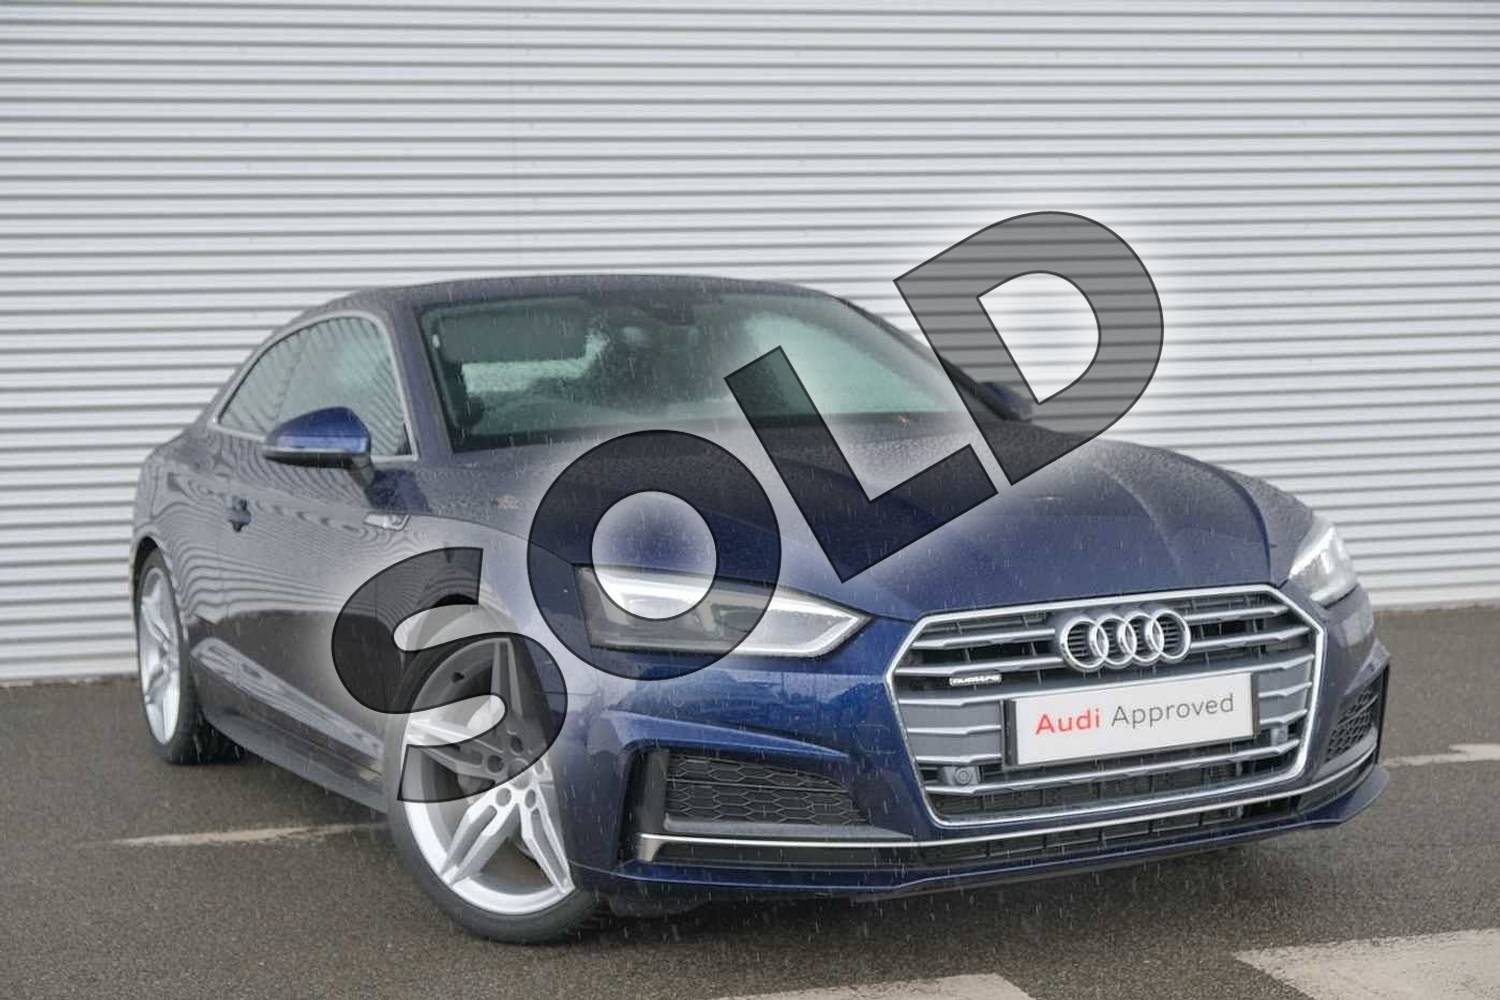 2020 Audi A5 Diesel Coupe 40 TDI Quattro S Line 2dr S Tronic in Navarra Blue Metallic at Coventry Audi